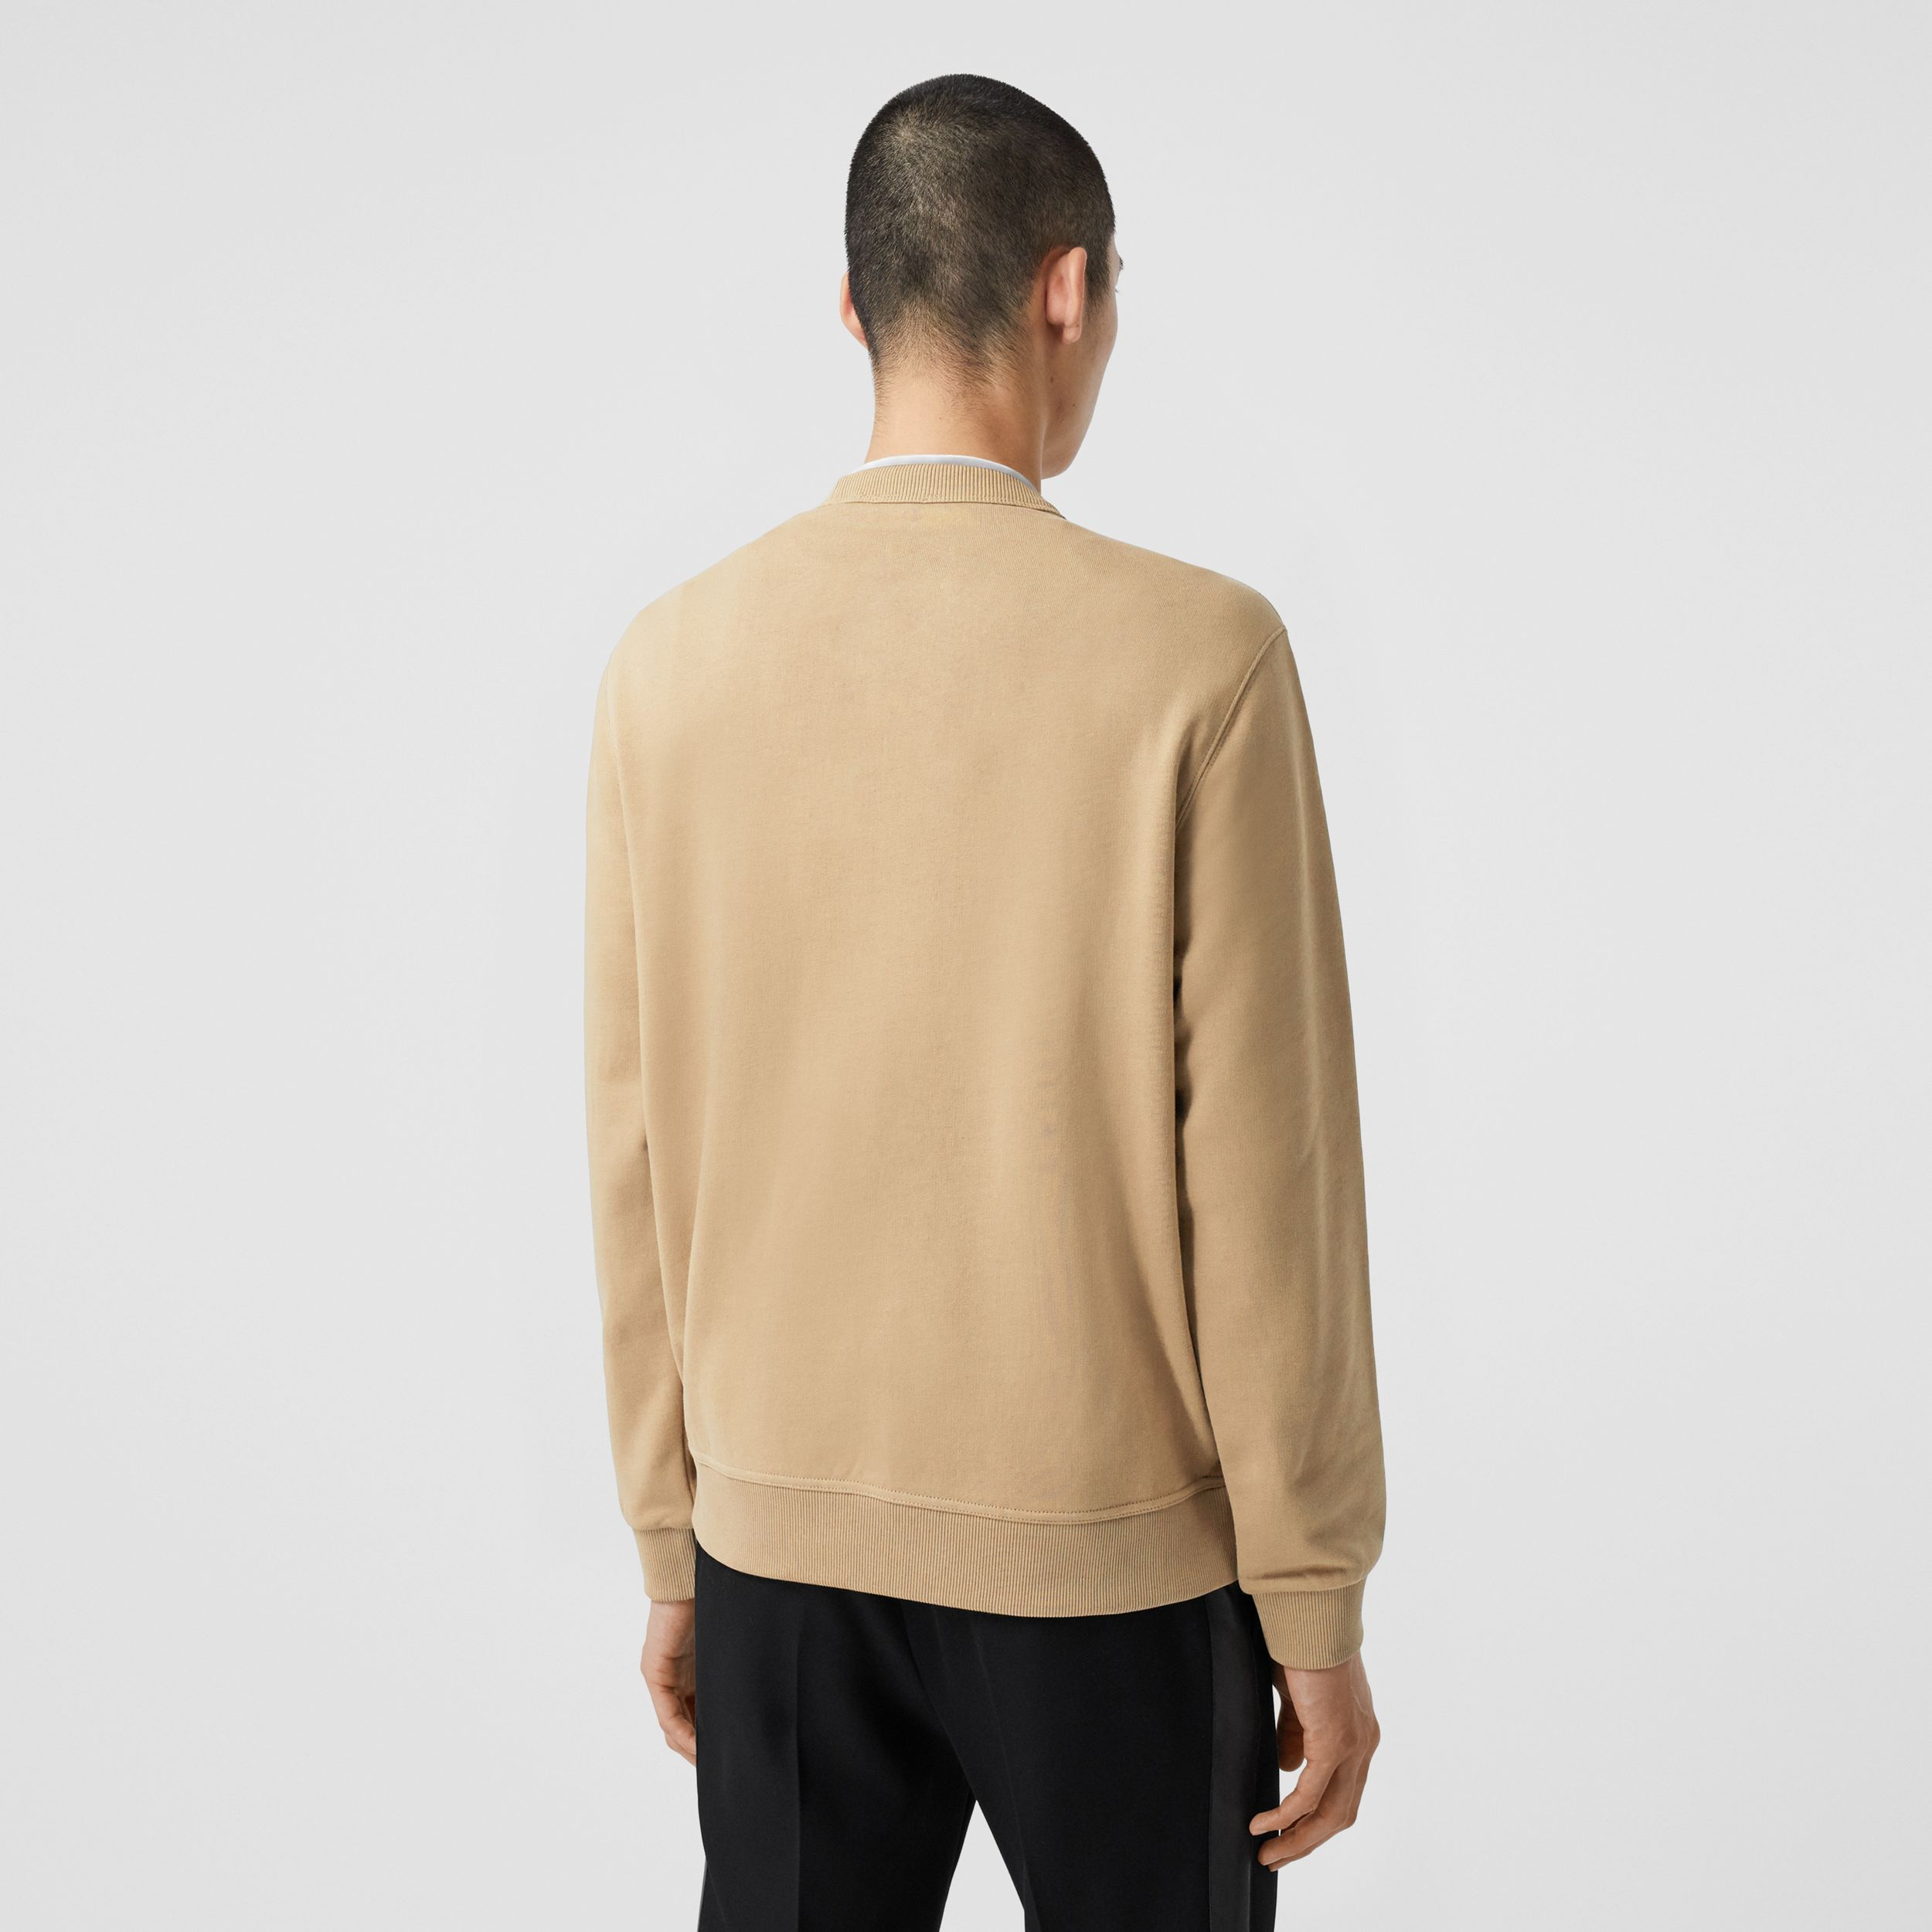 Monogram Motif Check Cashmere Panel Sweatshirt in Archive Beige - Men | Burberry - 3